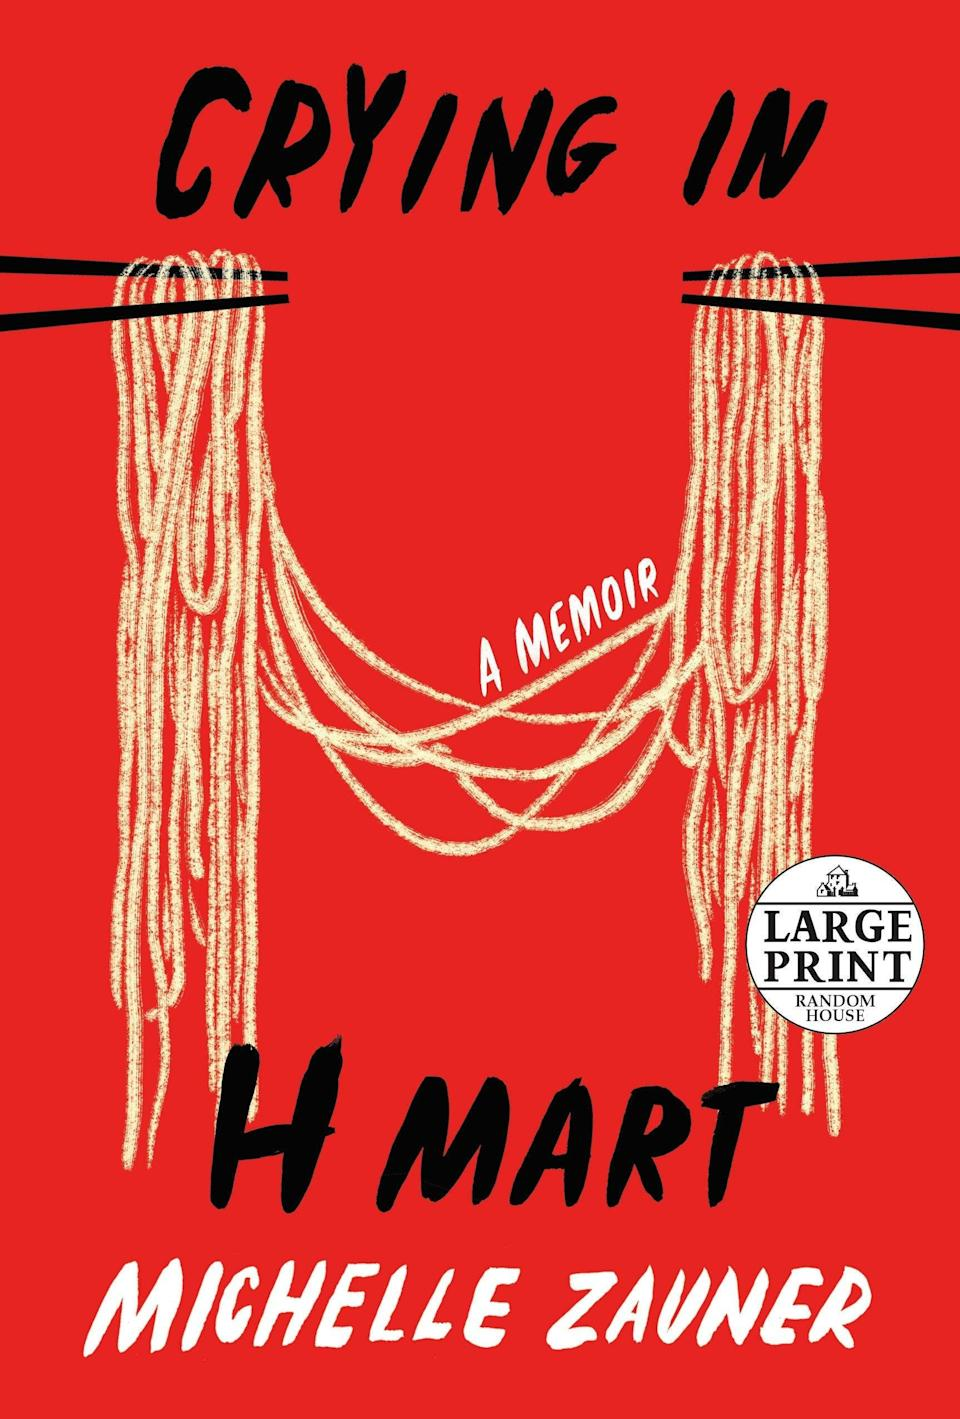 """<strong><em>Crying In H Mart </em>by Michelle Zauner</strong><br><br>Already set to become a <a href=""""https://www.hollywoodreporter.com/movies/movie-news/crying-in-h-mart-movie-1234963458/"""" rel=""""nofollow noopener"""" target=""""_blank"""" data-ylk=""""slk:major motion picture"""" class=""""link rapid-noclick-resp"""">major motion picture</a>, <em>Crying in H Mart</em> charts the emotional life story of Michelle Zauner (from the band Japanese Breakfast). Centring around her experiences as a Korean American woman, the memoir is a perfect mishmash of commentary on everything from the excruciating nature of puberty to the story of how she met her husband. But it's the experiences of food that bind the book together, chronicling the late-night cooking sessions with her mother while they visited her grandmother in Seoul. Eventually discussing her disconnection and reconnection with her Asian American identity in the wake of tragedy, this memoir is an exploration of the cherished gifts that can be gained from second cultures.<br><em><br>Available to purchase 5th August.</em><br><br><strong>Michelle Zauner</strong> Crying in H Mart, $, available at <a href=""""https://uk.bookshop.org/books/1605064150_crying-in-h-mart/9781529033779"""" rel=""""nofollow noopener"""" target=""""_blank"""" data-ylk=""""slk:bookshop.org"""" class=""""link rapid-noclick-resp"""">bookshop.org</a>"""